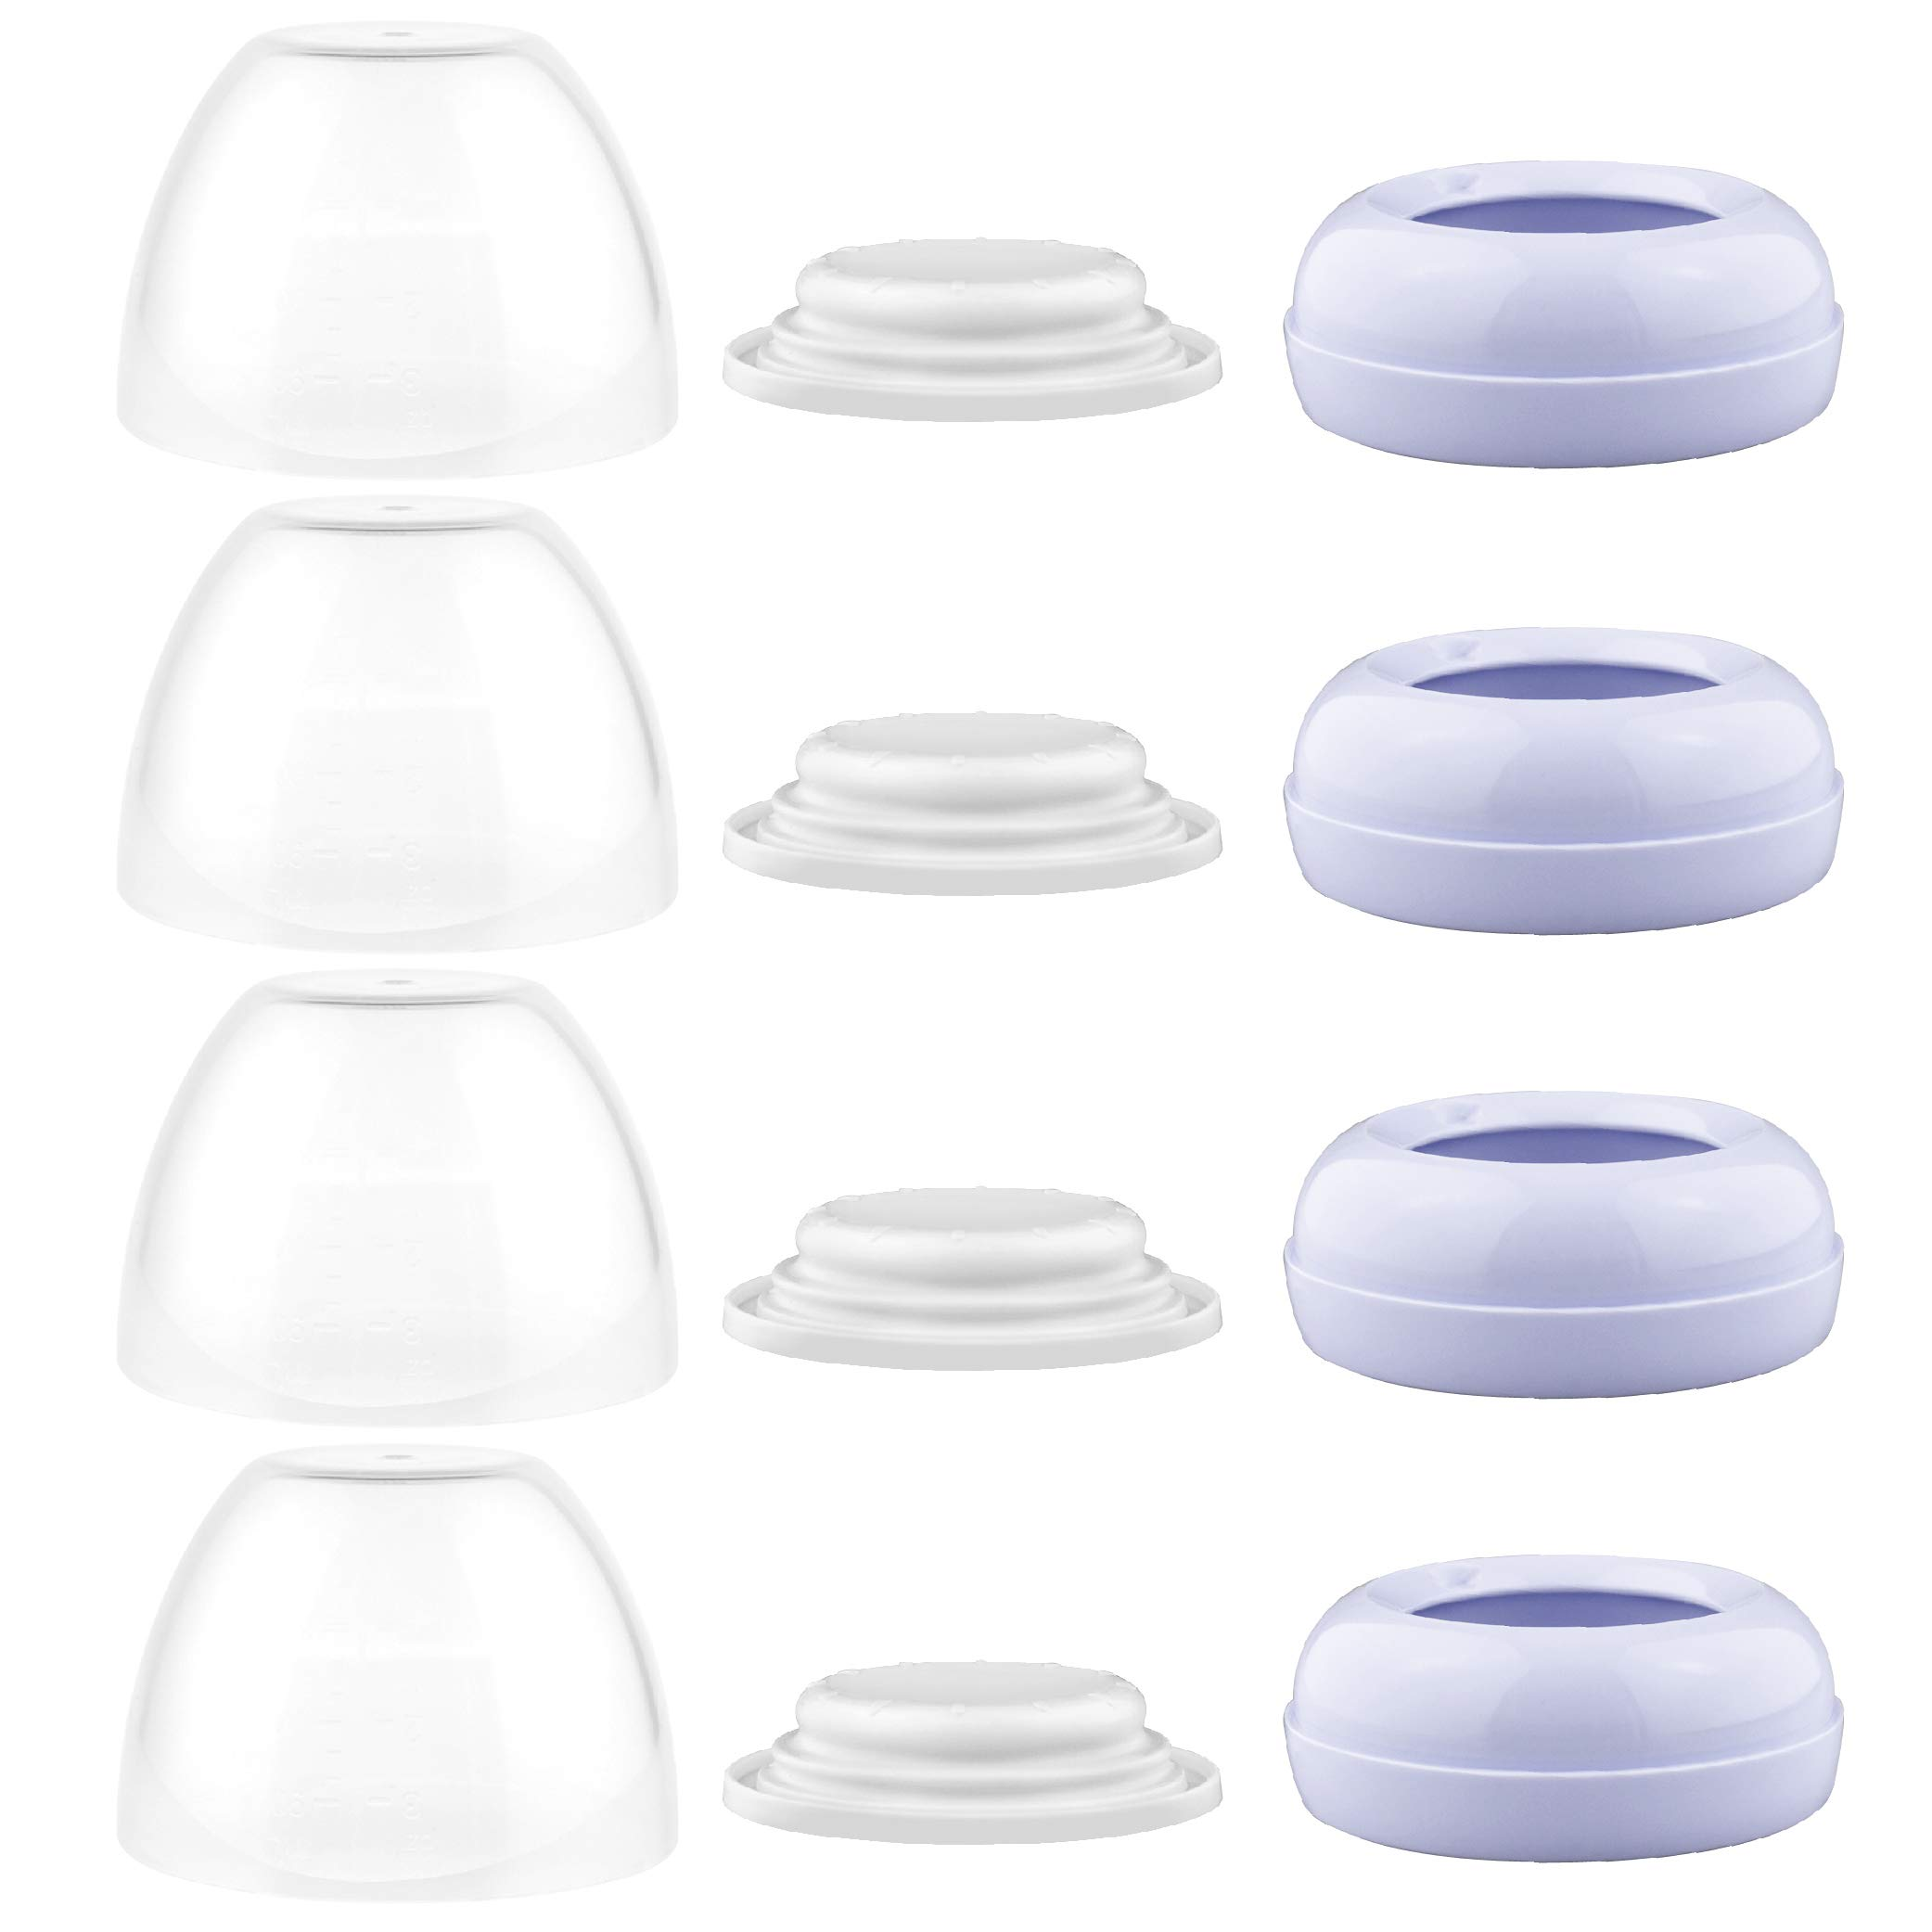 Maymom Dome Caps, Screw Rings, Sealing Discs Compatible with Philips Avent Natural Bottles, Avent PP Bottles or Natural; No Nipple Included. Convert Avent Classic Bottle Into Natural